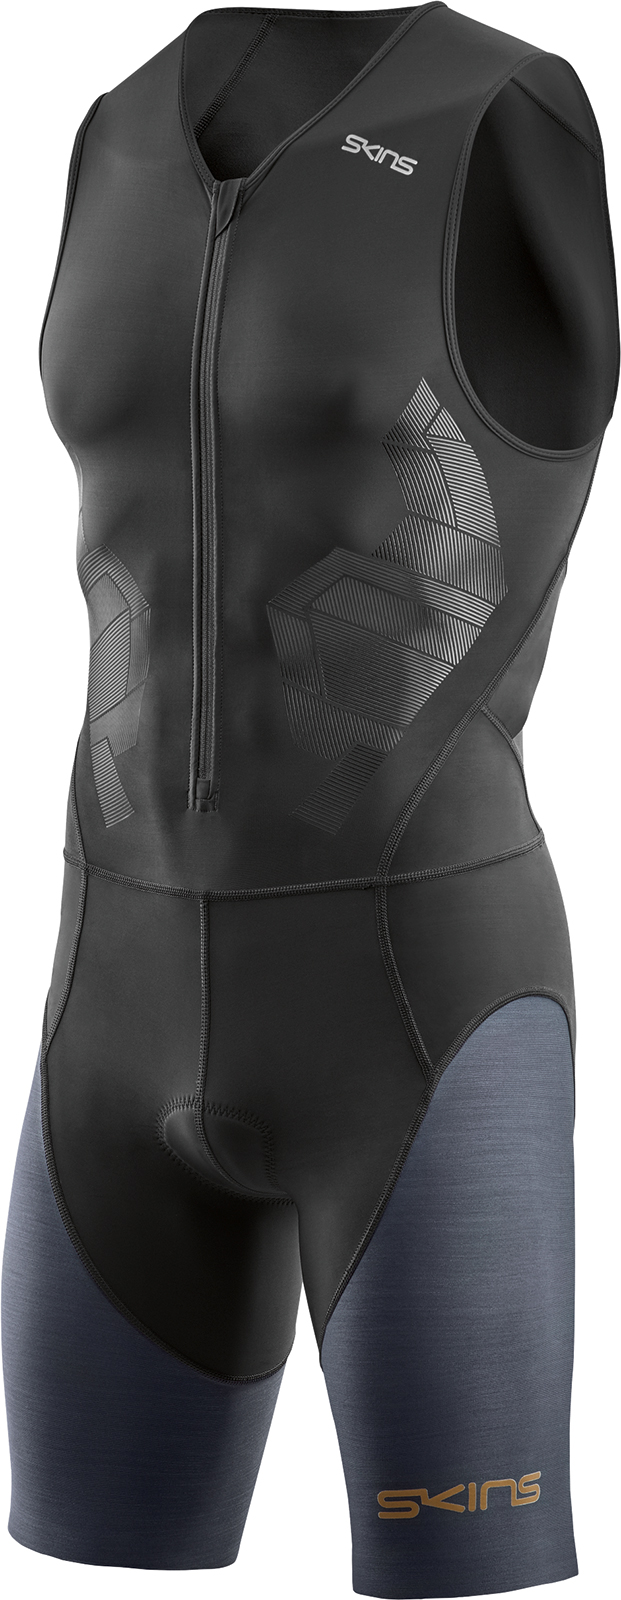 SKINS TRI-DNAmic Sleeve Skinsuit | Jerseys